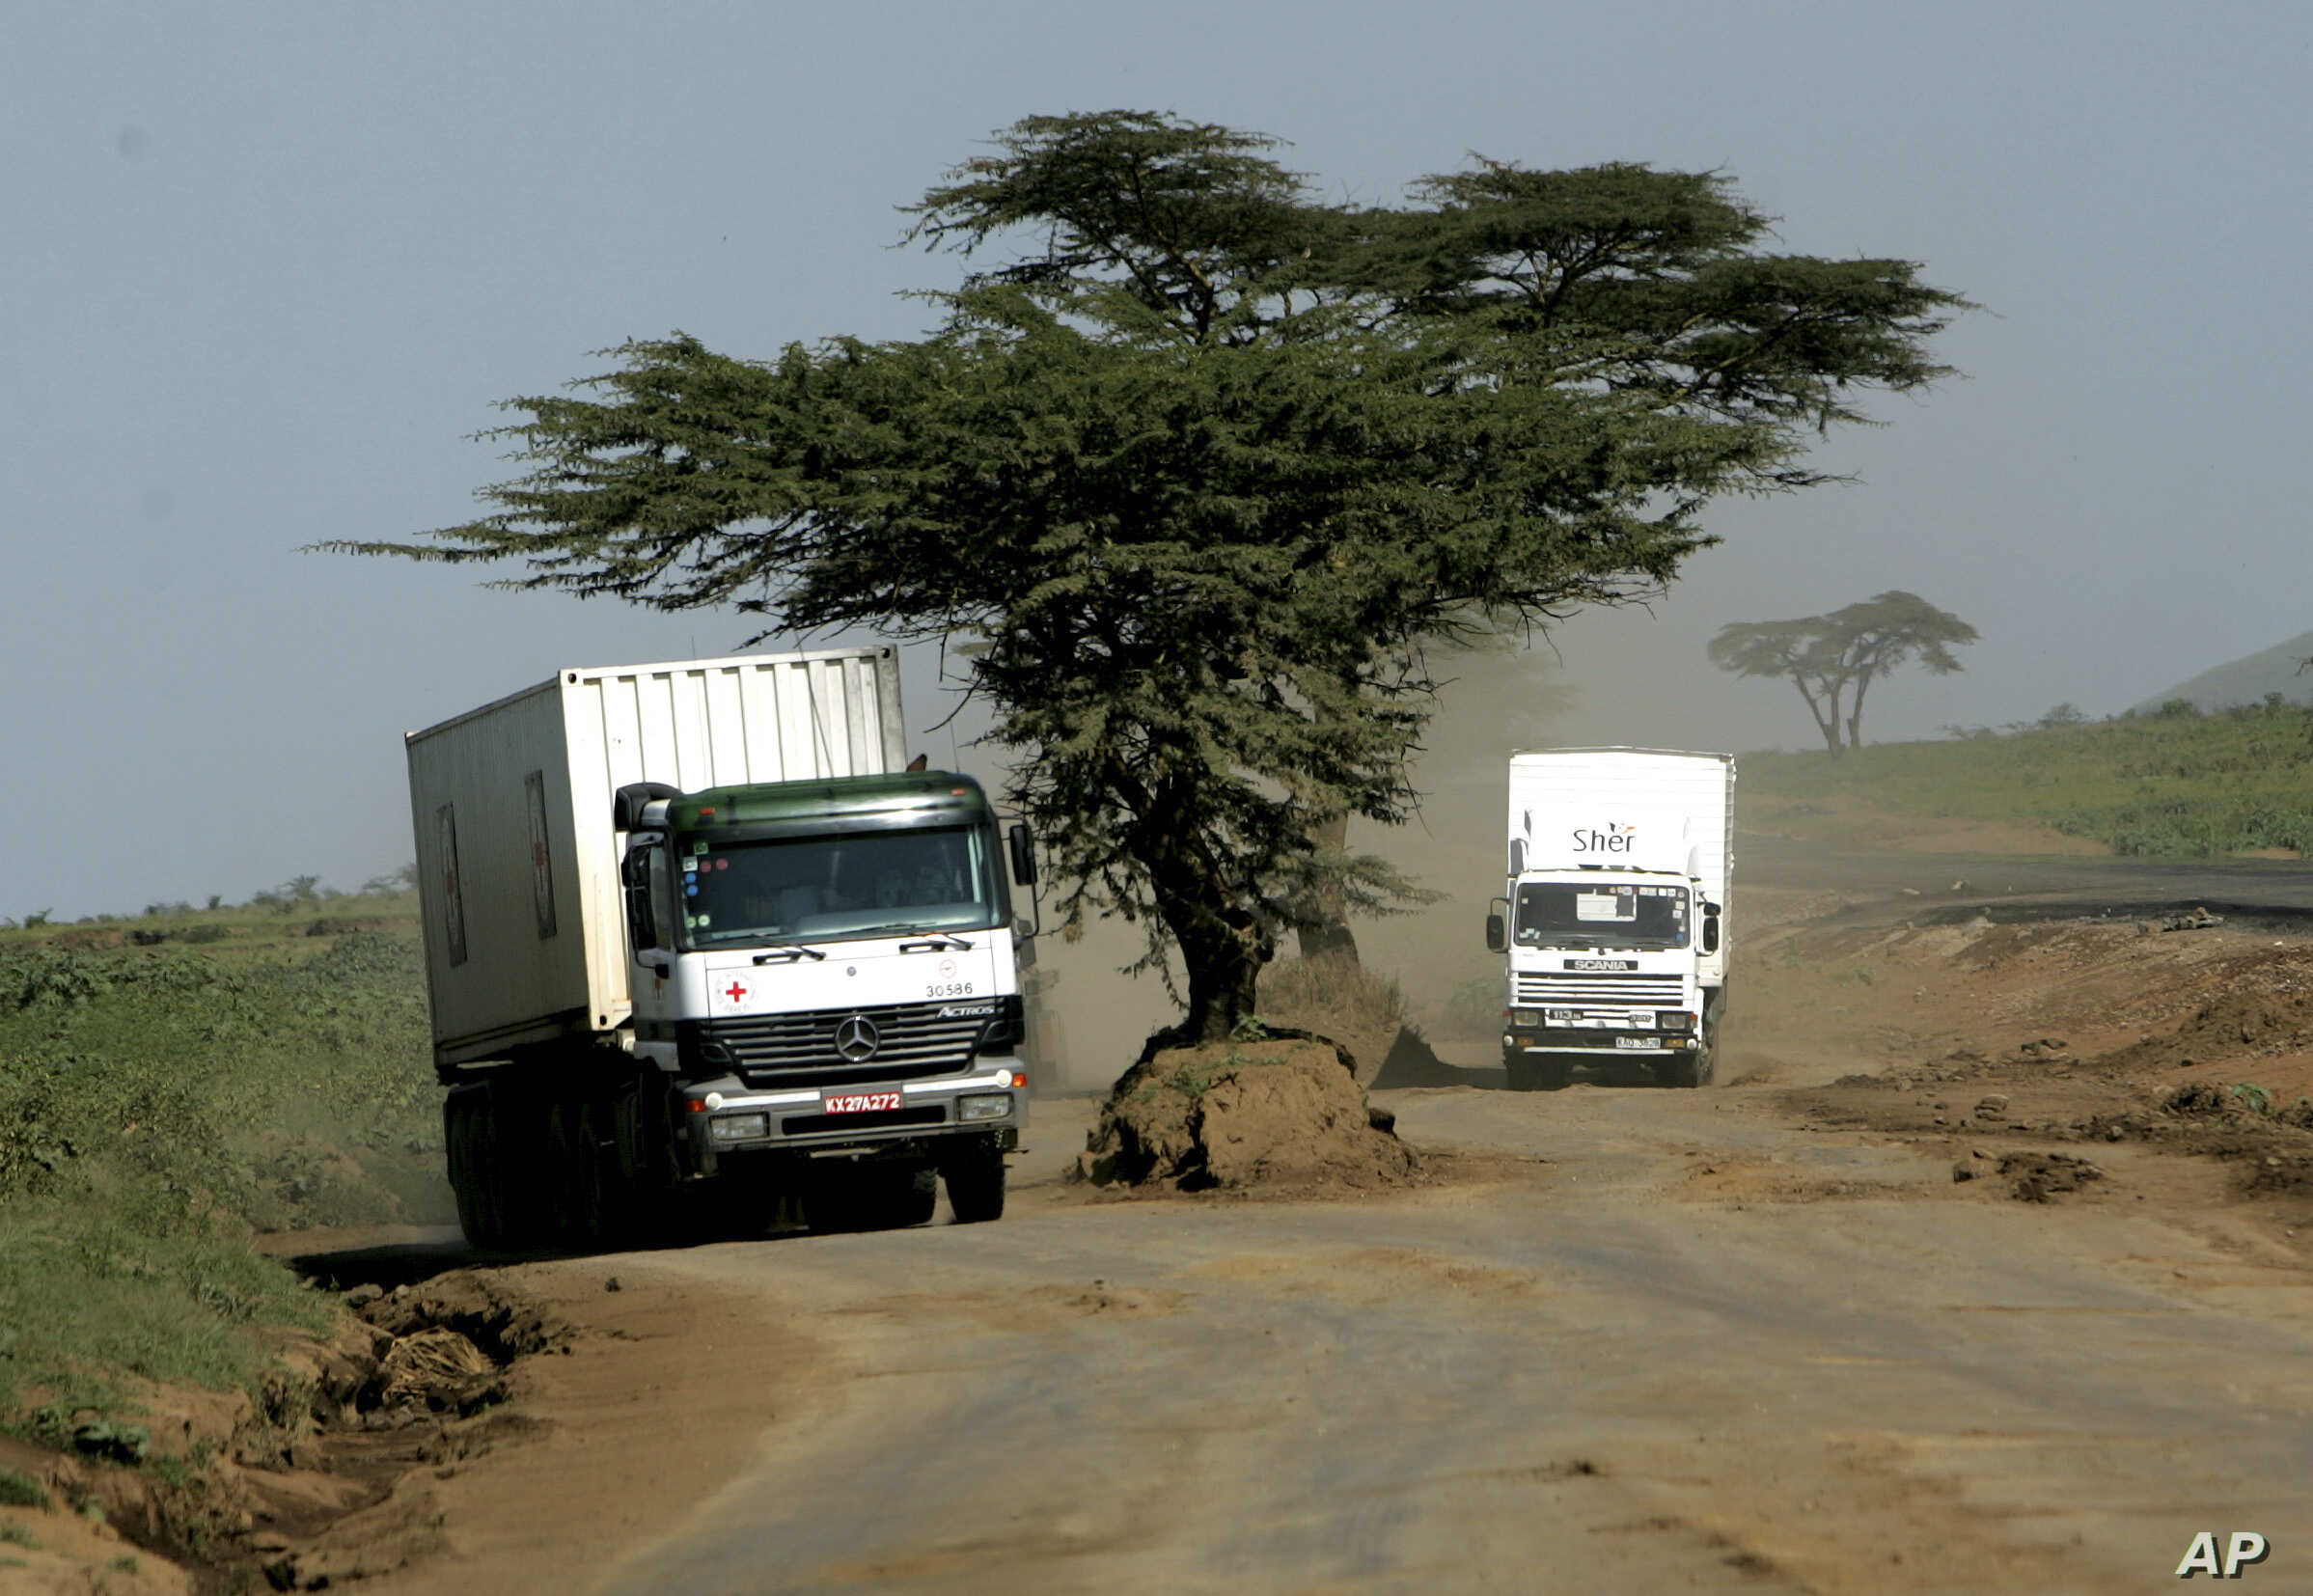 ** FILE ** A Red Cross truck travels on a dirt road, Monday, Feb. 12, 2007, outside the Kenyan town of Naivasha. The most important highway in East Africa starts at the Indian Ocean port of Mombasa. Tens of thousands of trucks every year carry food, ...